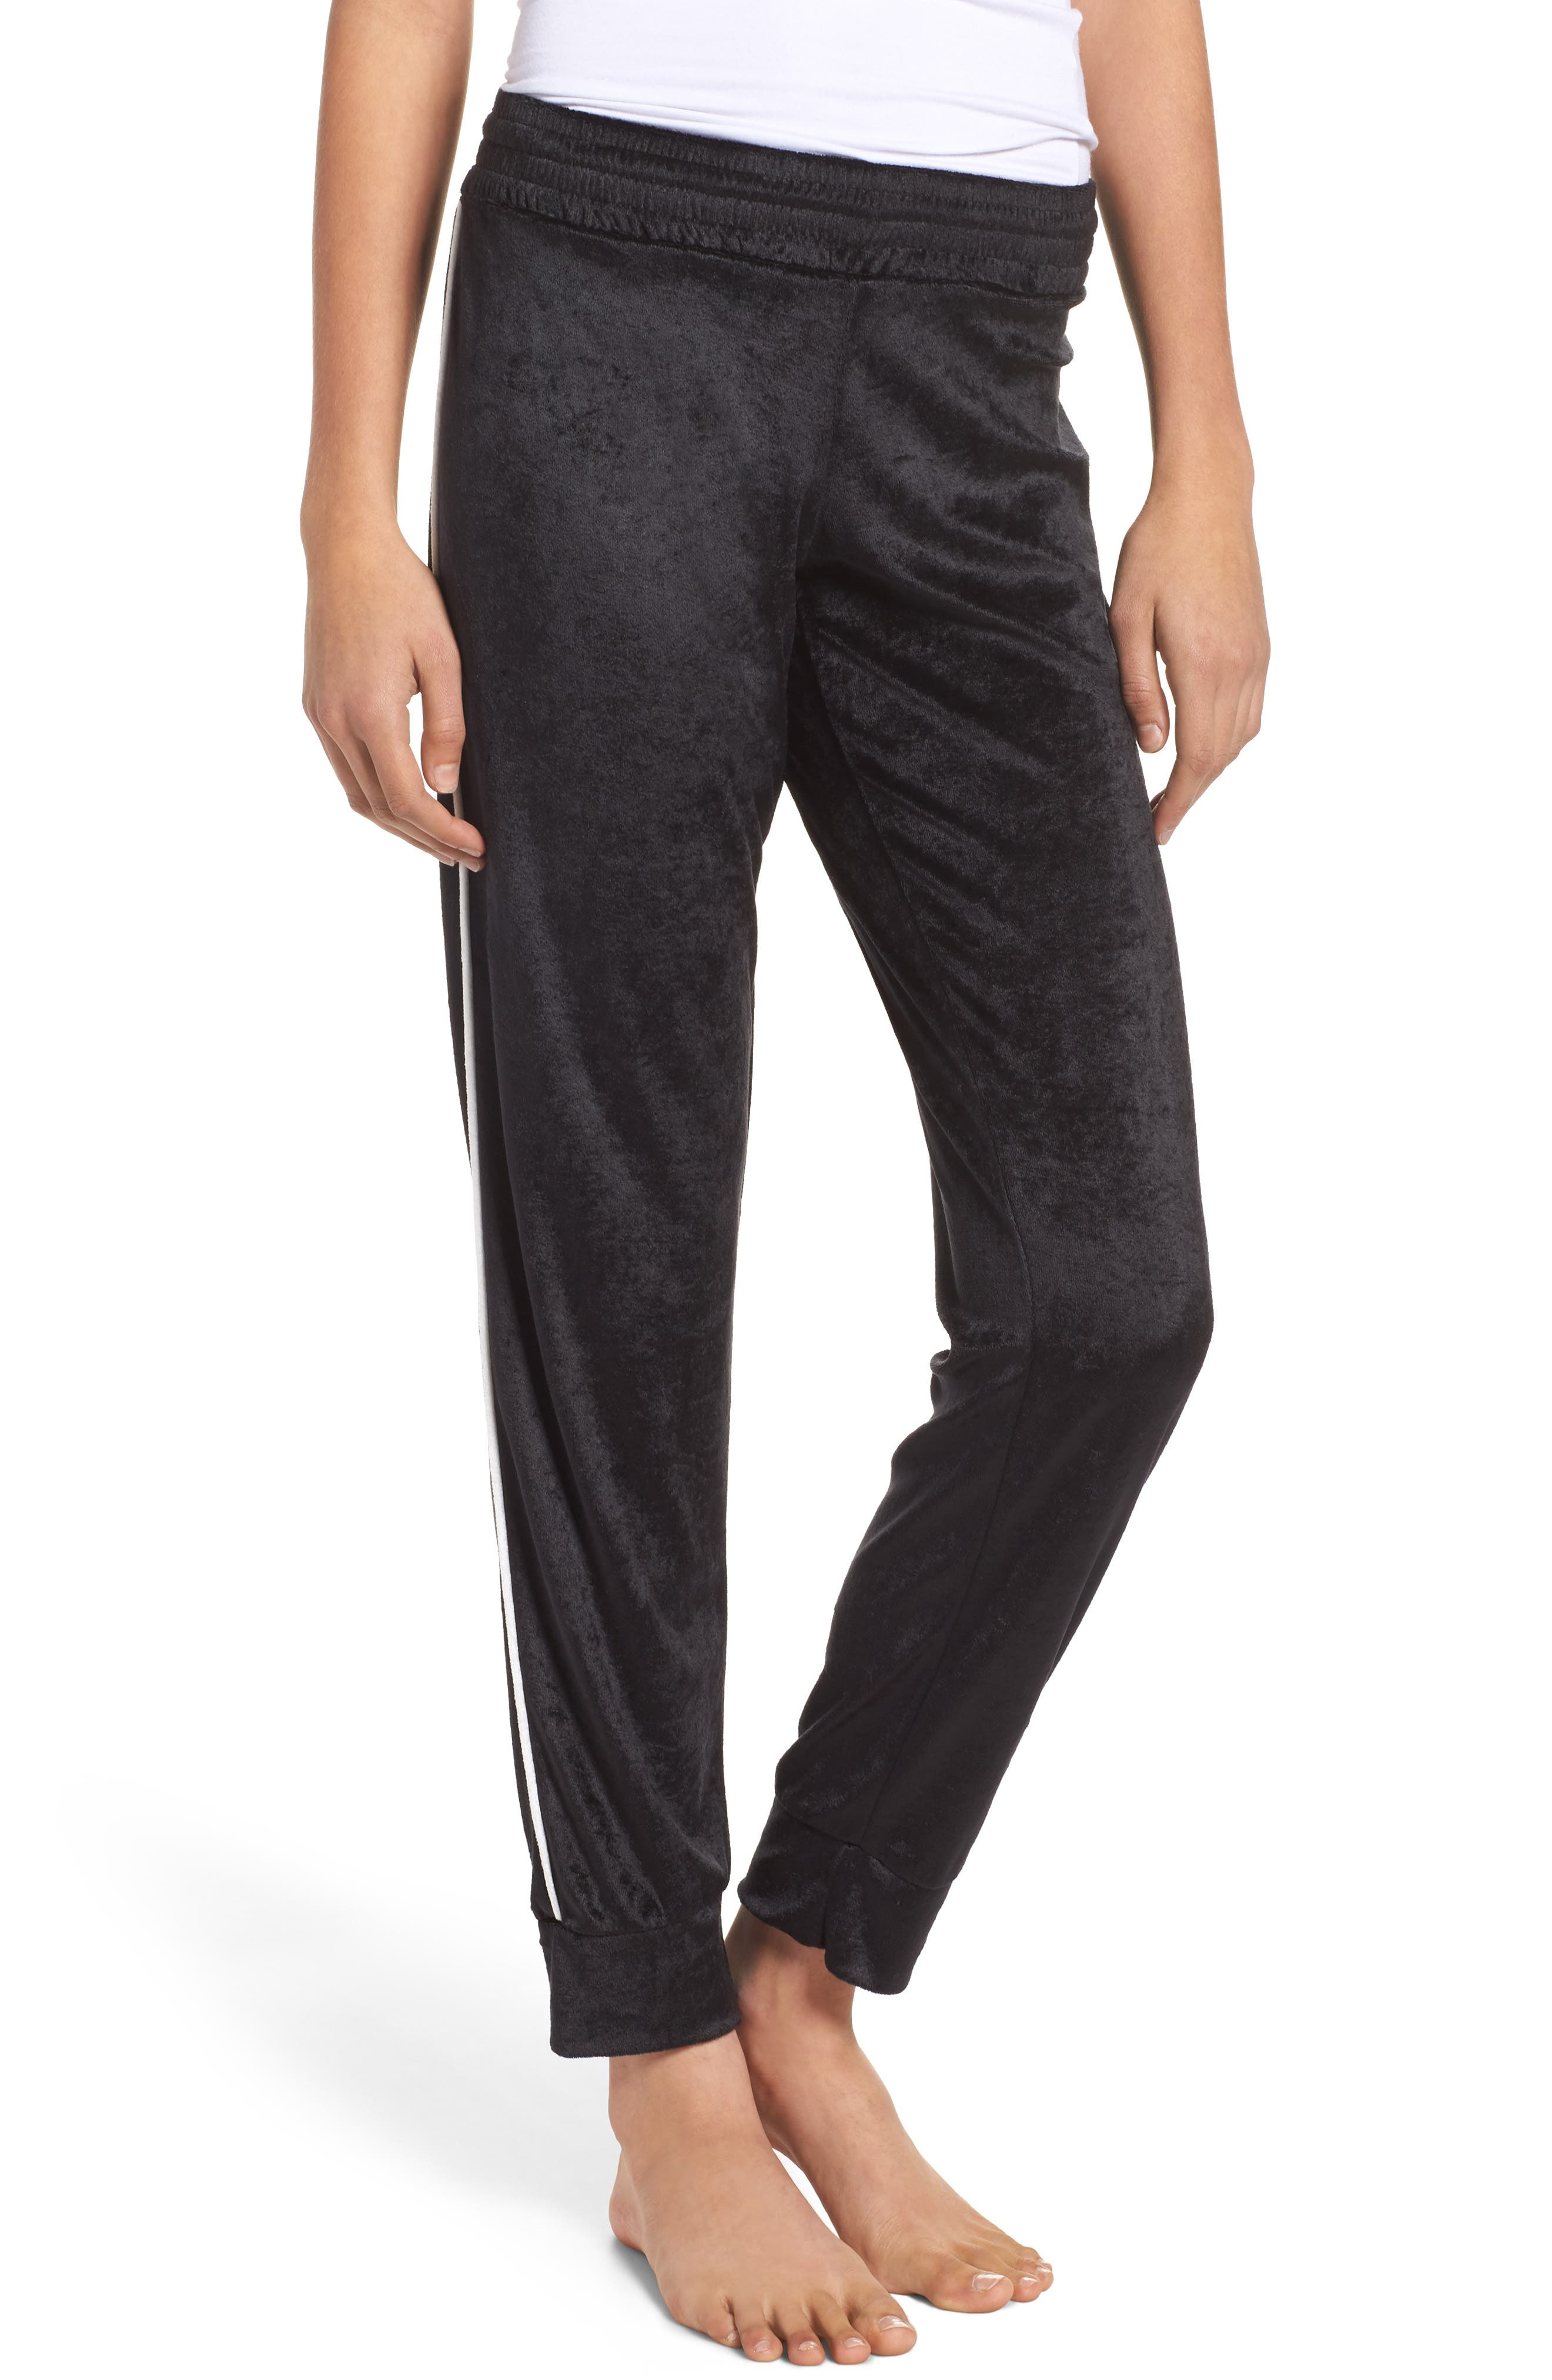 Galaxy Velour Lounge Track Pants,                         Main,                         color, Black/ White